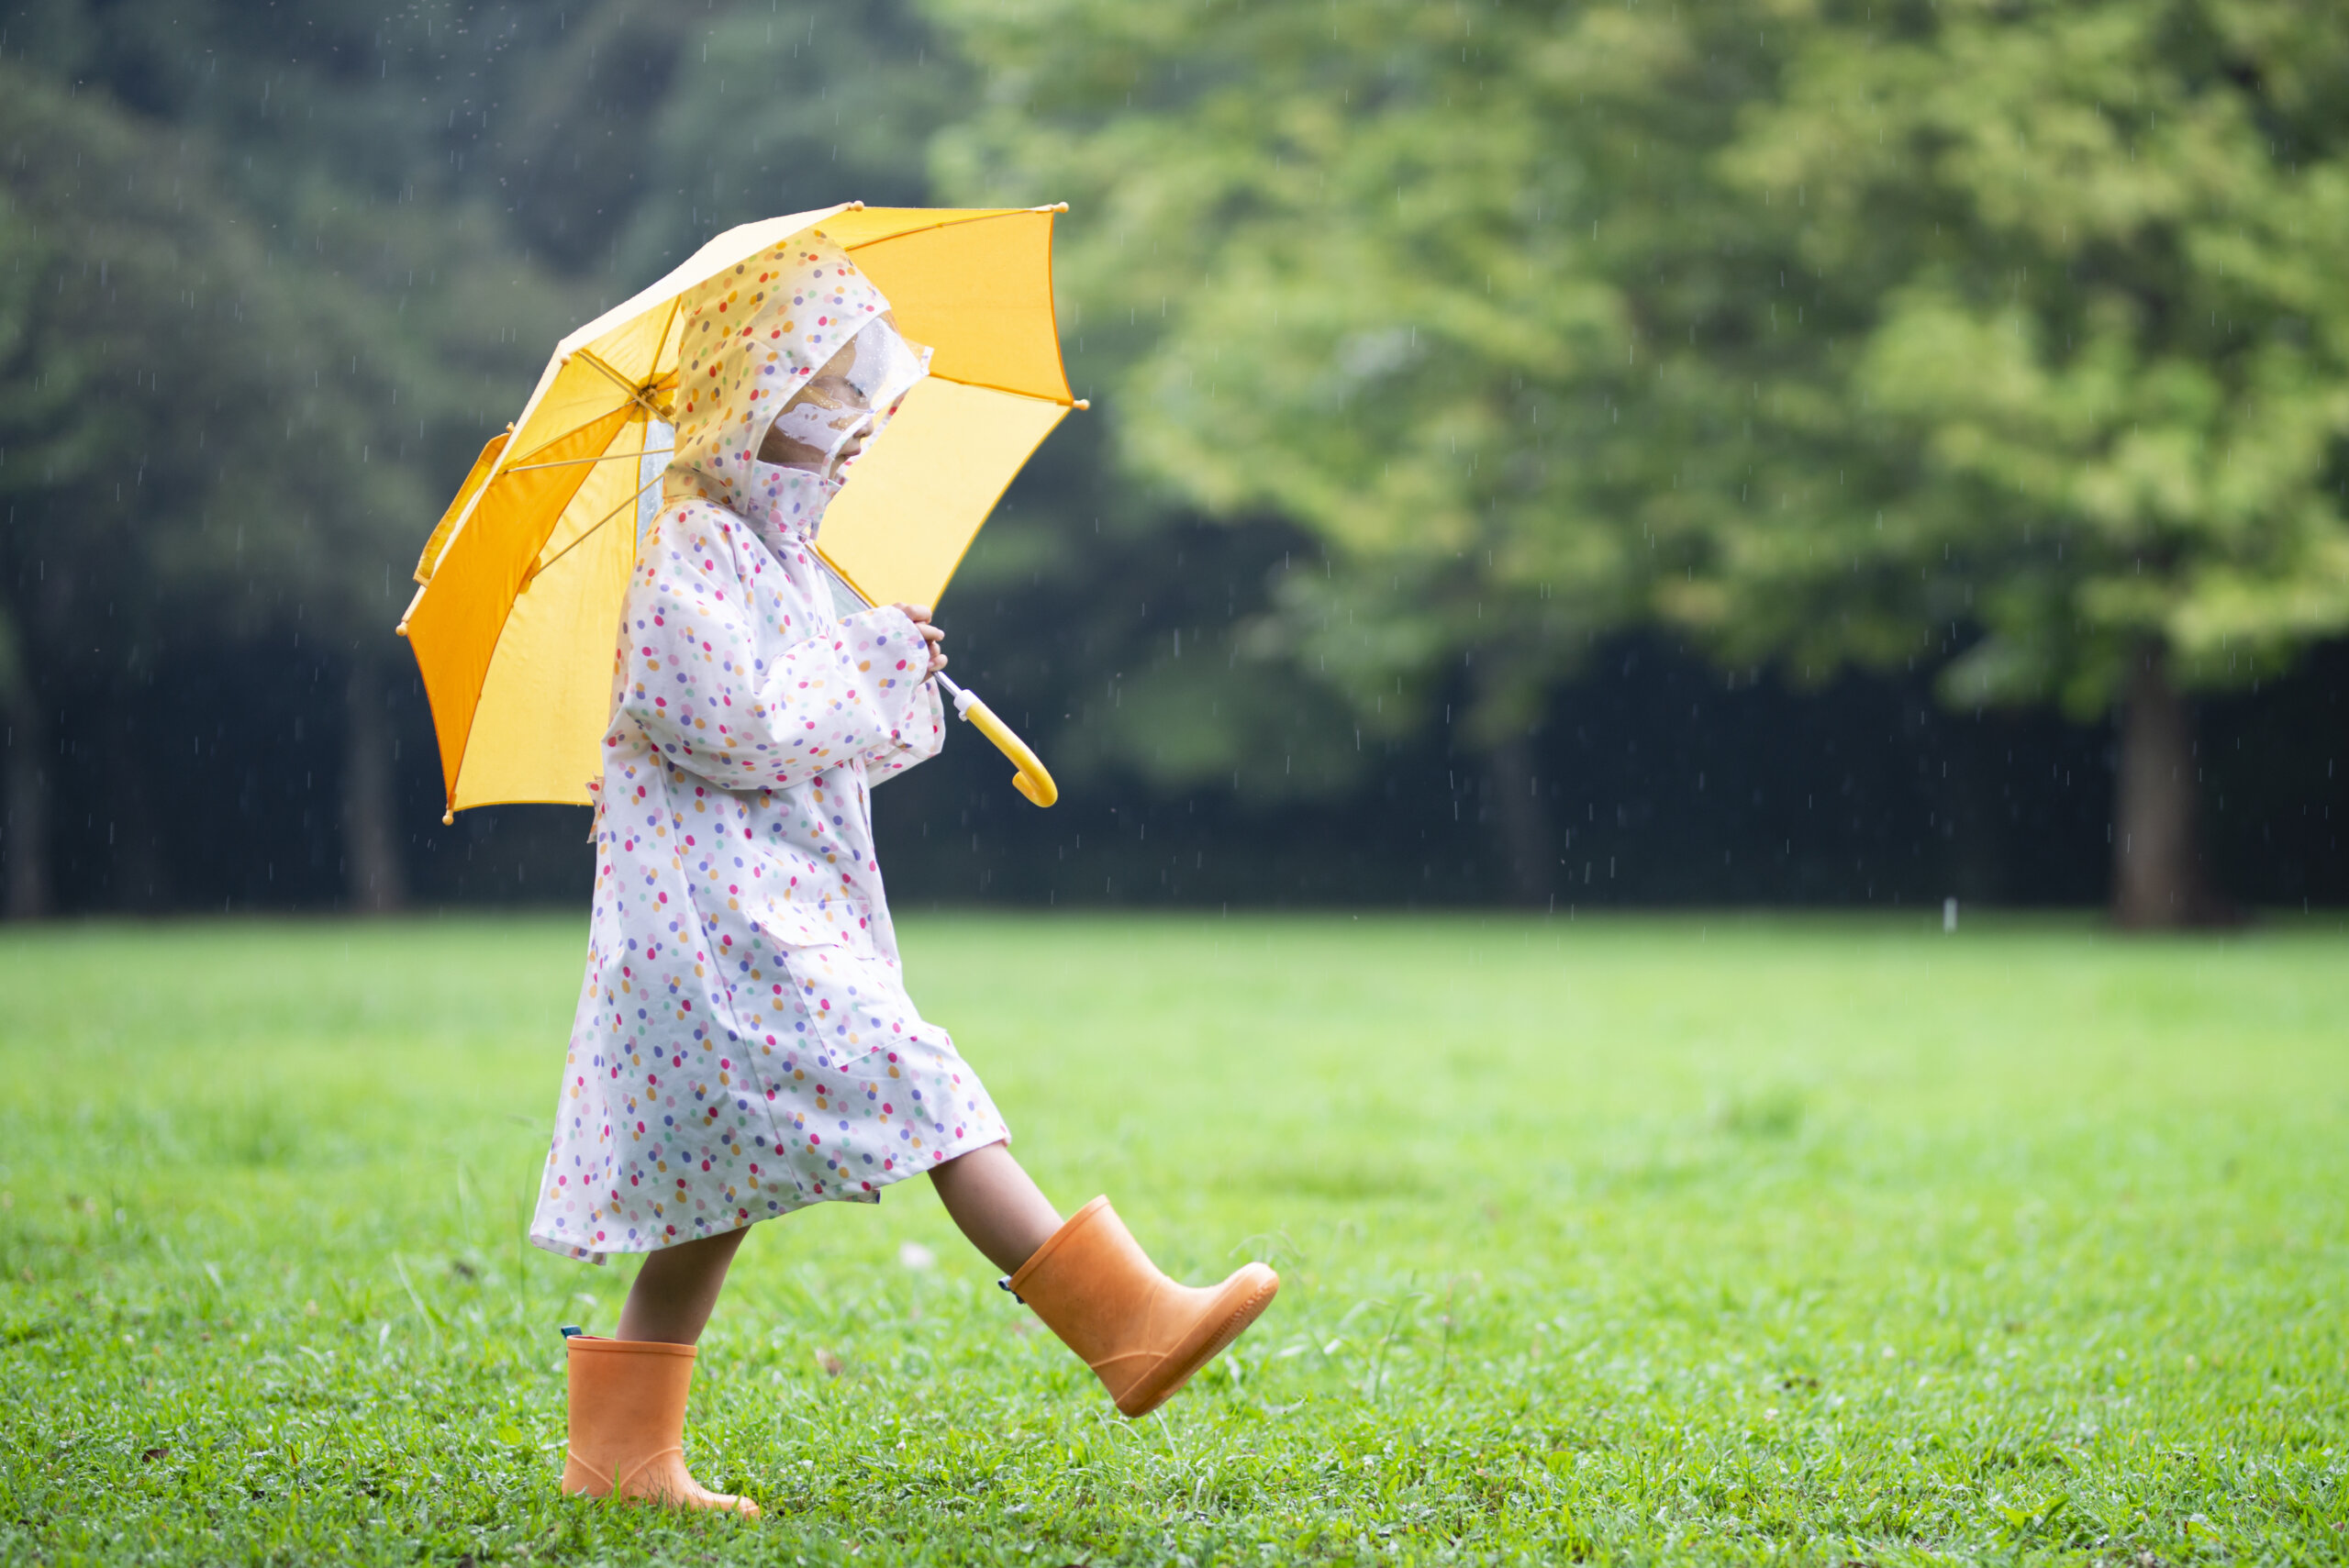 Person standing in the rain walking on grass with umbrella during summer showers.